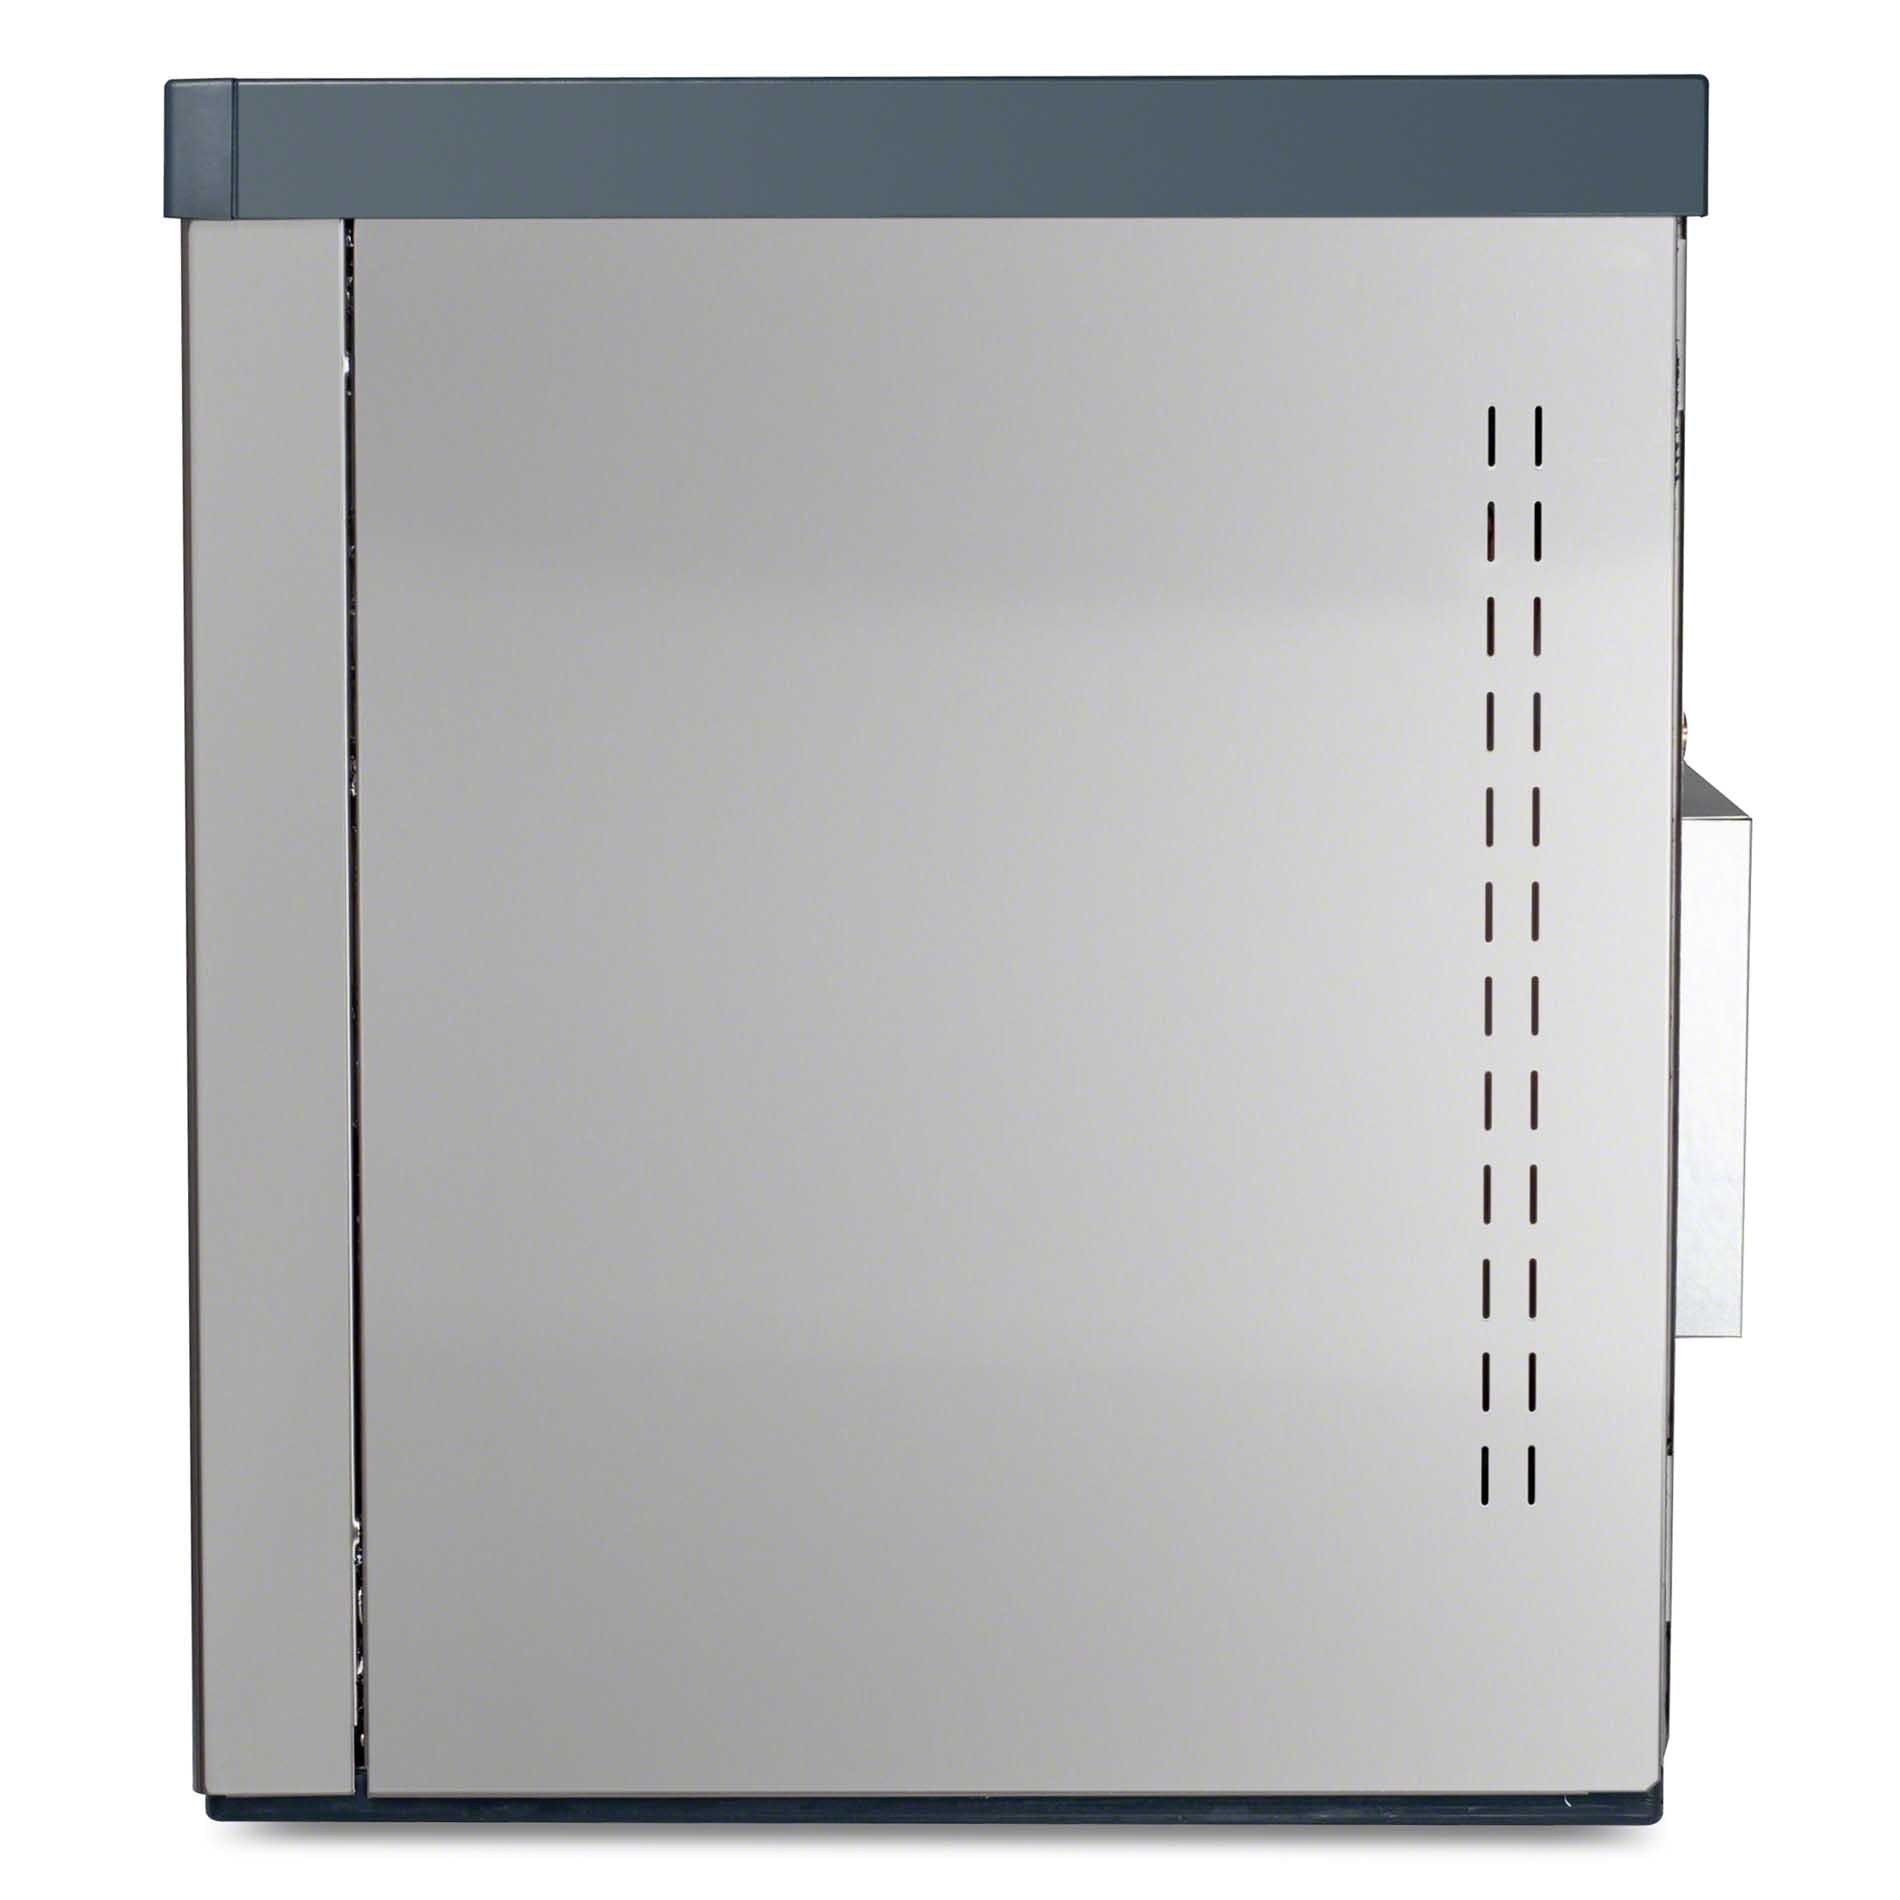 Scotsman - C2148SR-32A 2248 lb Half Size Cube Ice Machine - Prodigy Series Ice machine sold by Food Service Warehouse